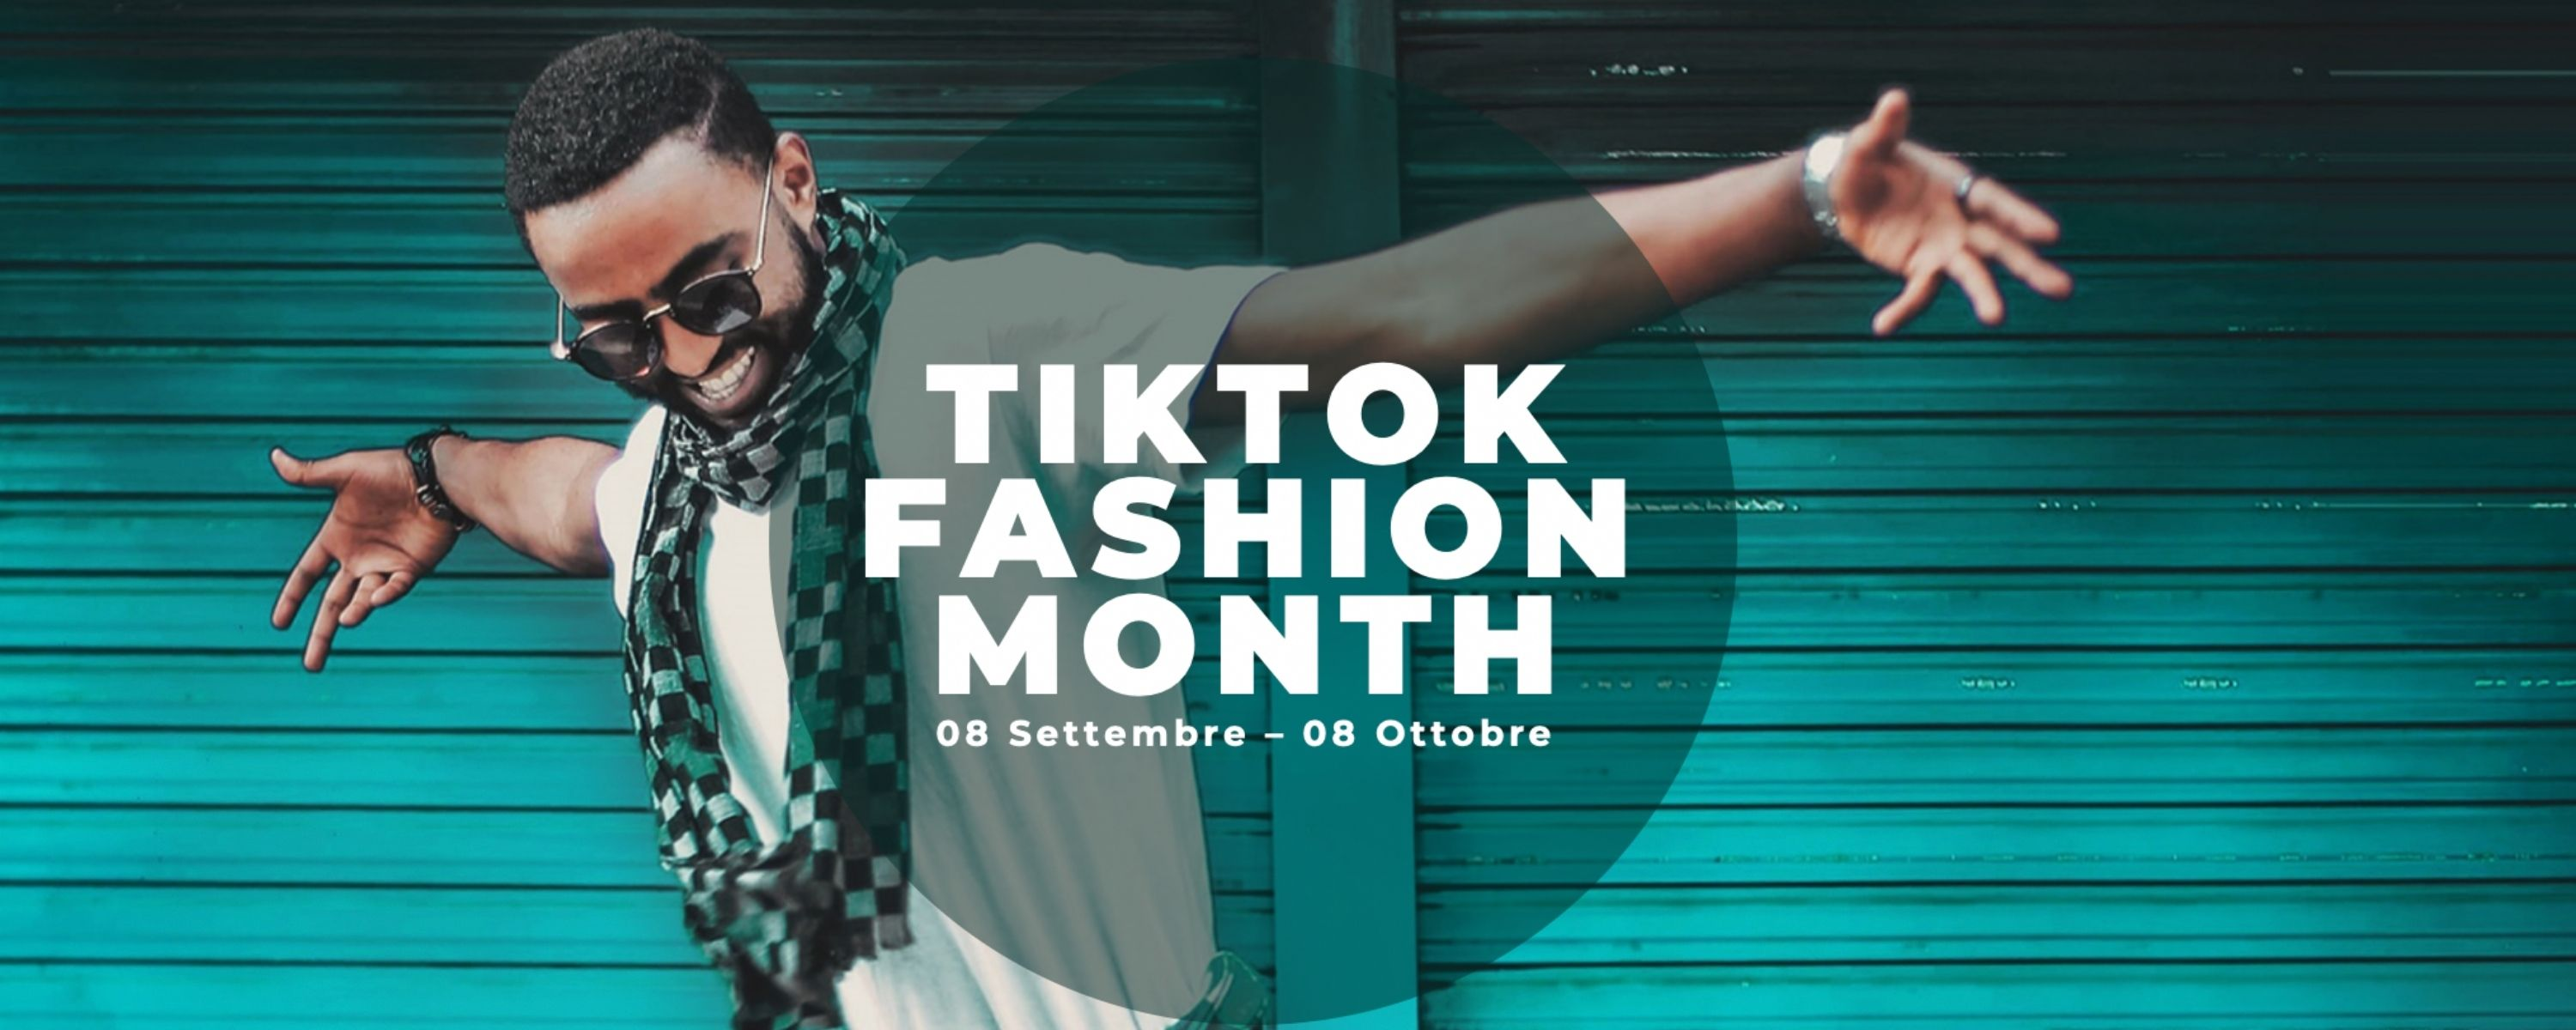 TikTok Fashion Month